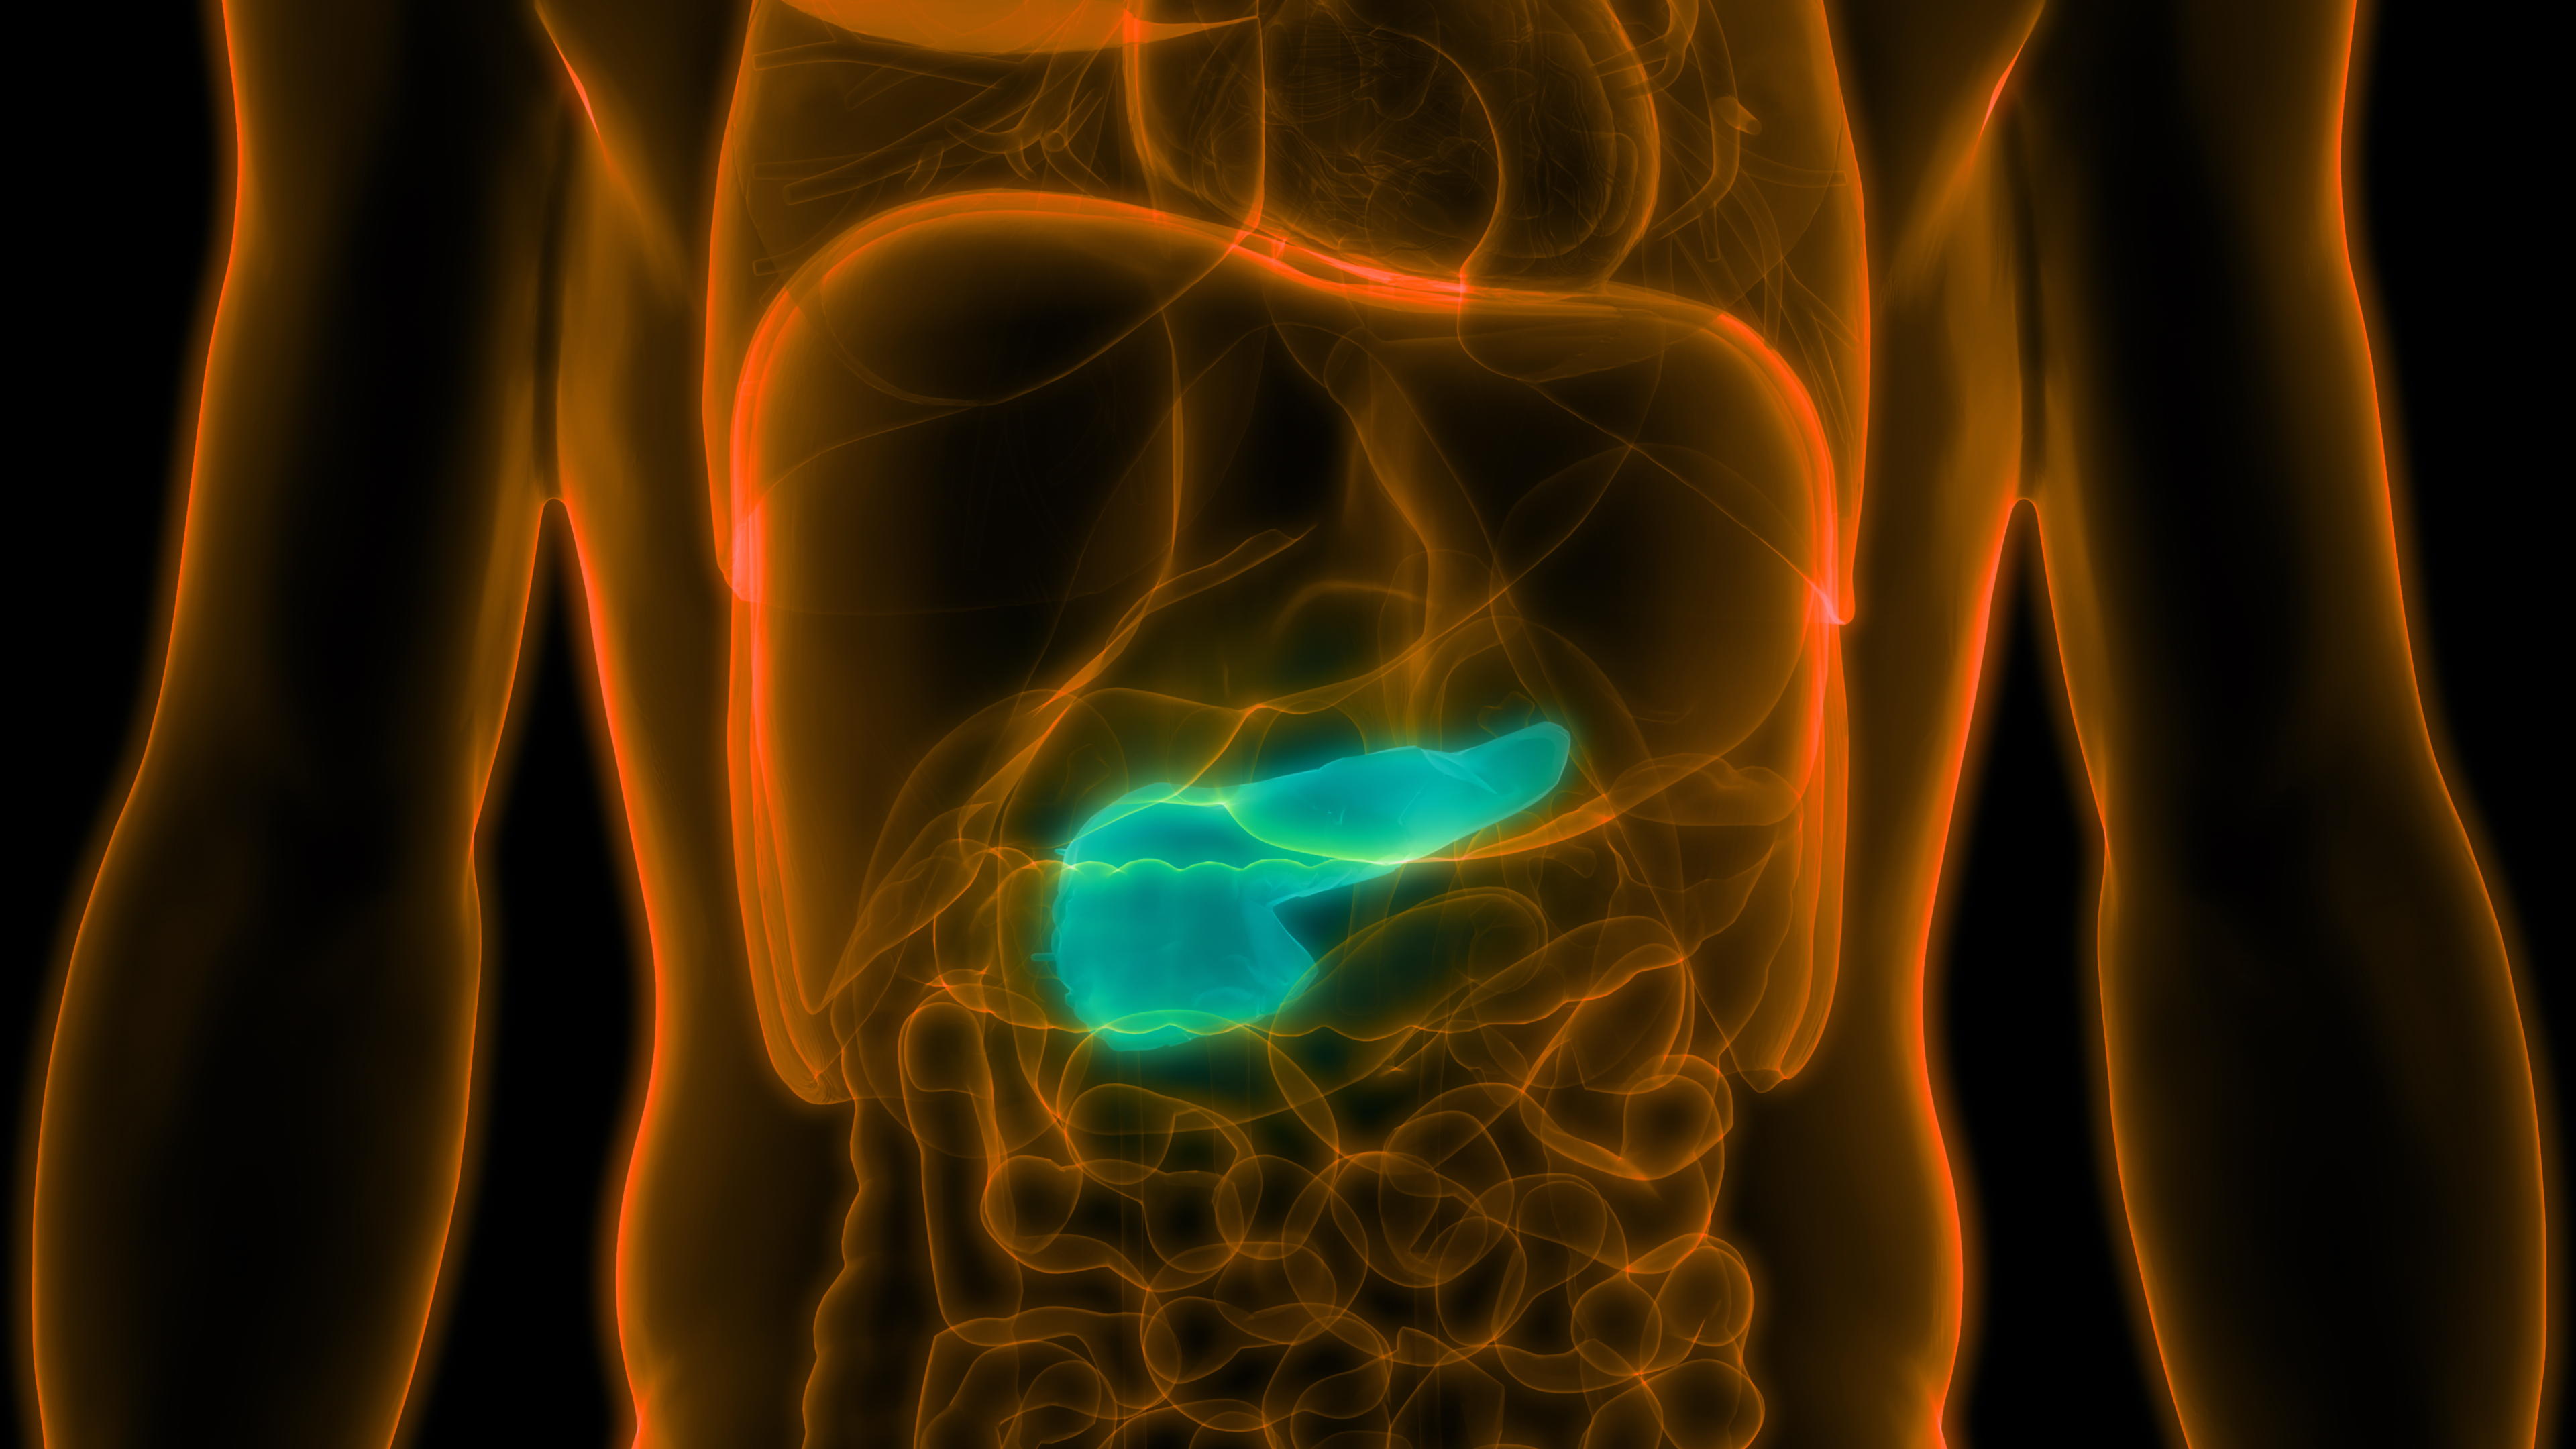 Pancreatic Cancer Treatment Successfully Targets Cell Cycle